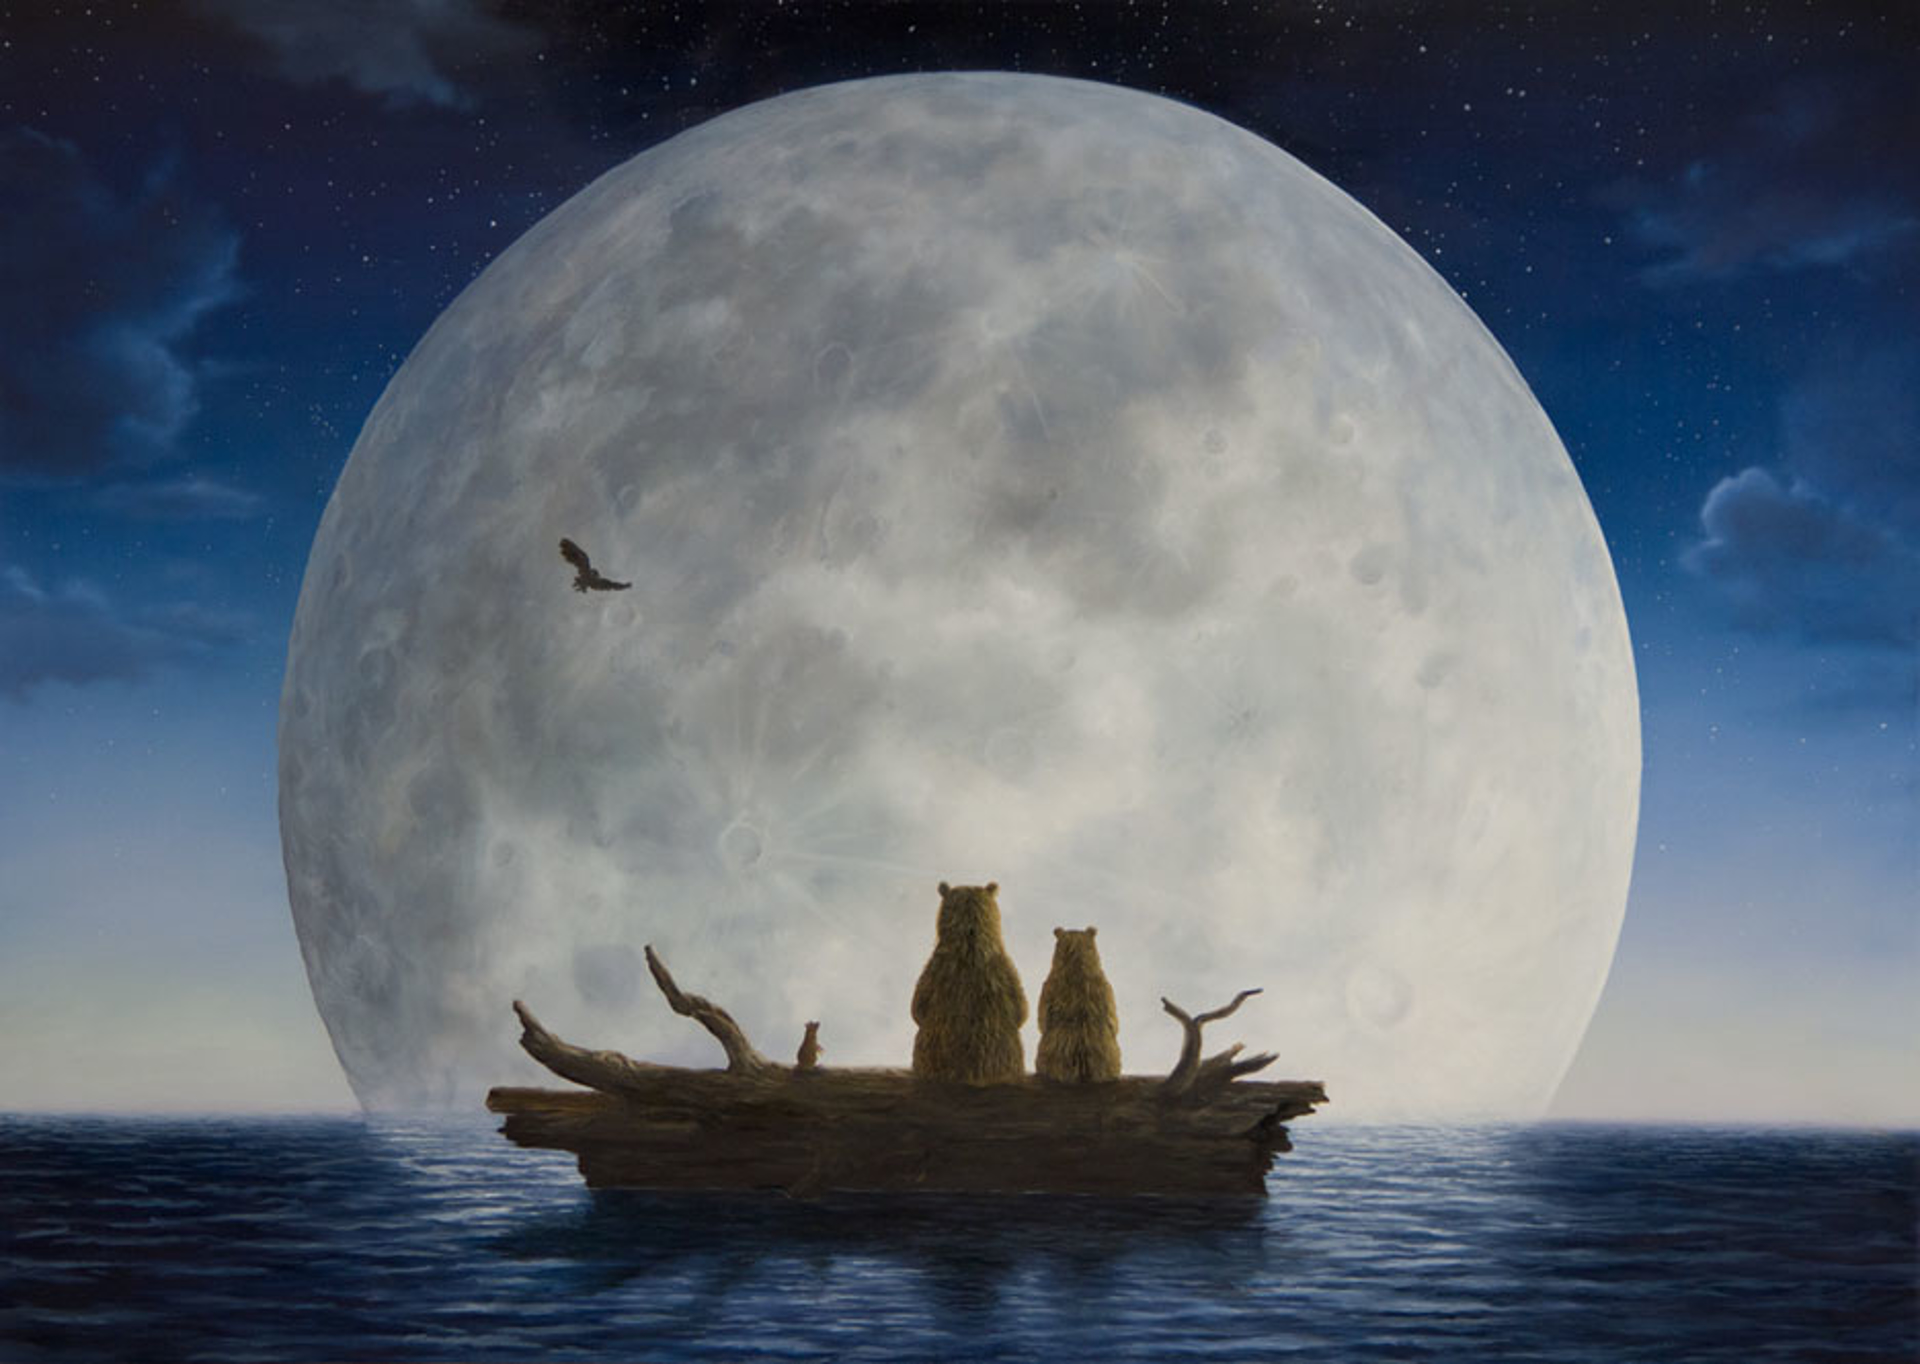 Moonlighters by Robert Bissell